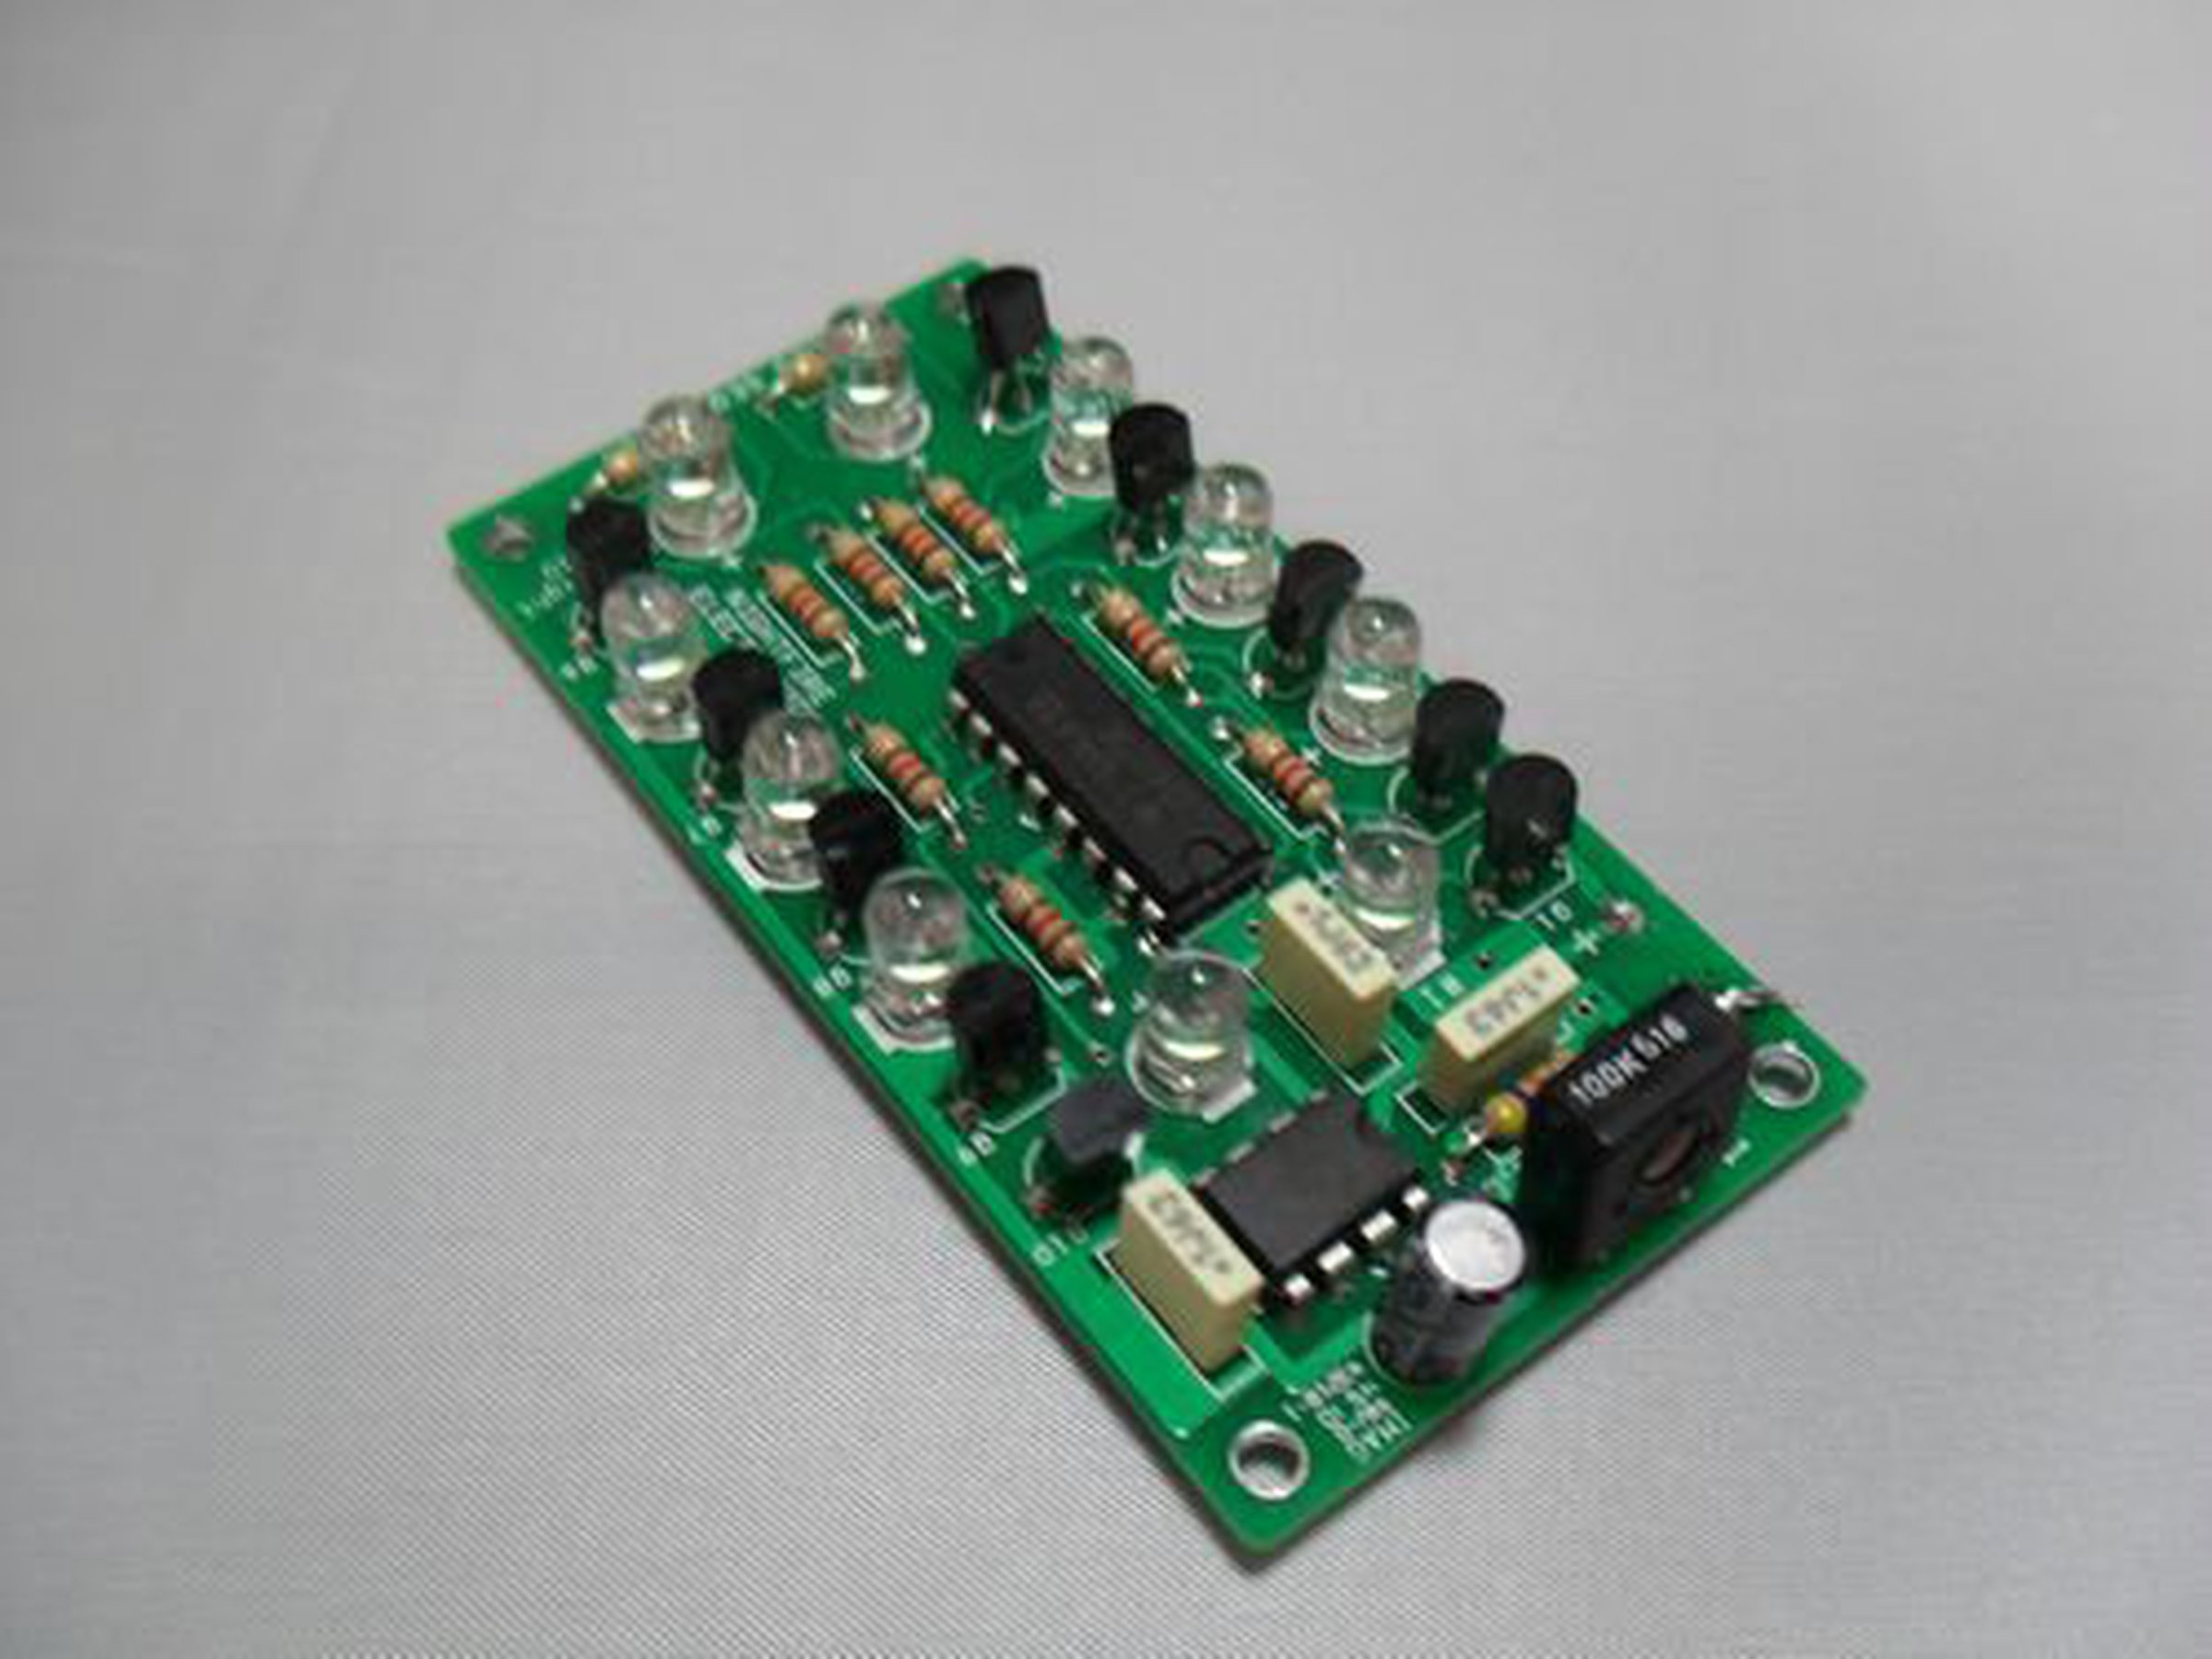 Led Sequencer Chaser Kit 1478 From Nightfire Electronics Llc On Details About Pcb Printed Circuit Board Breadboard Intermediate 3